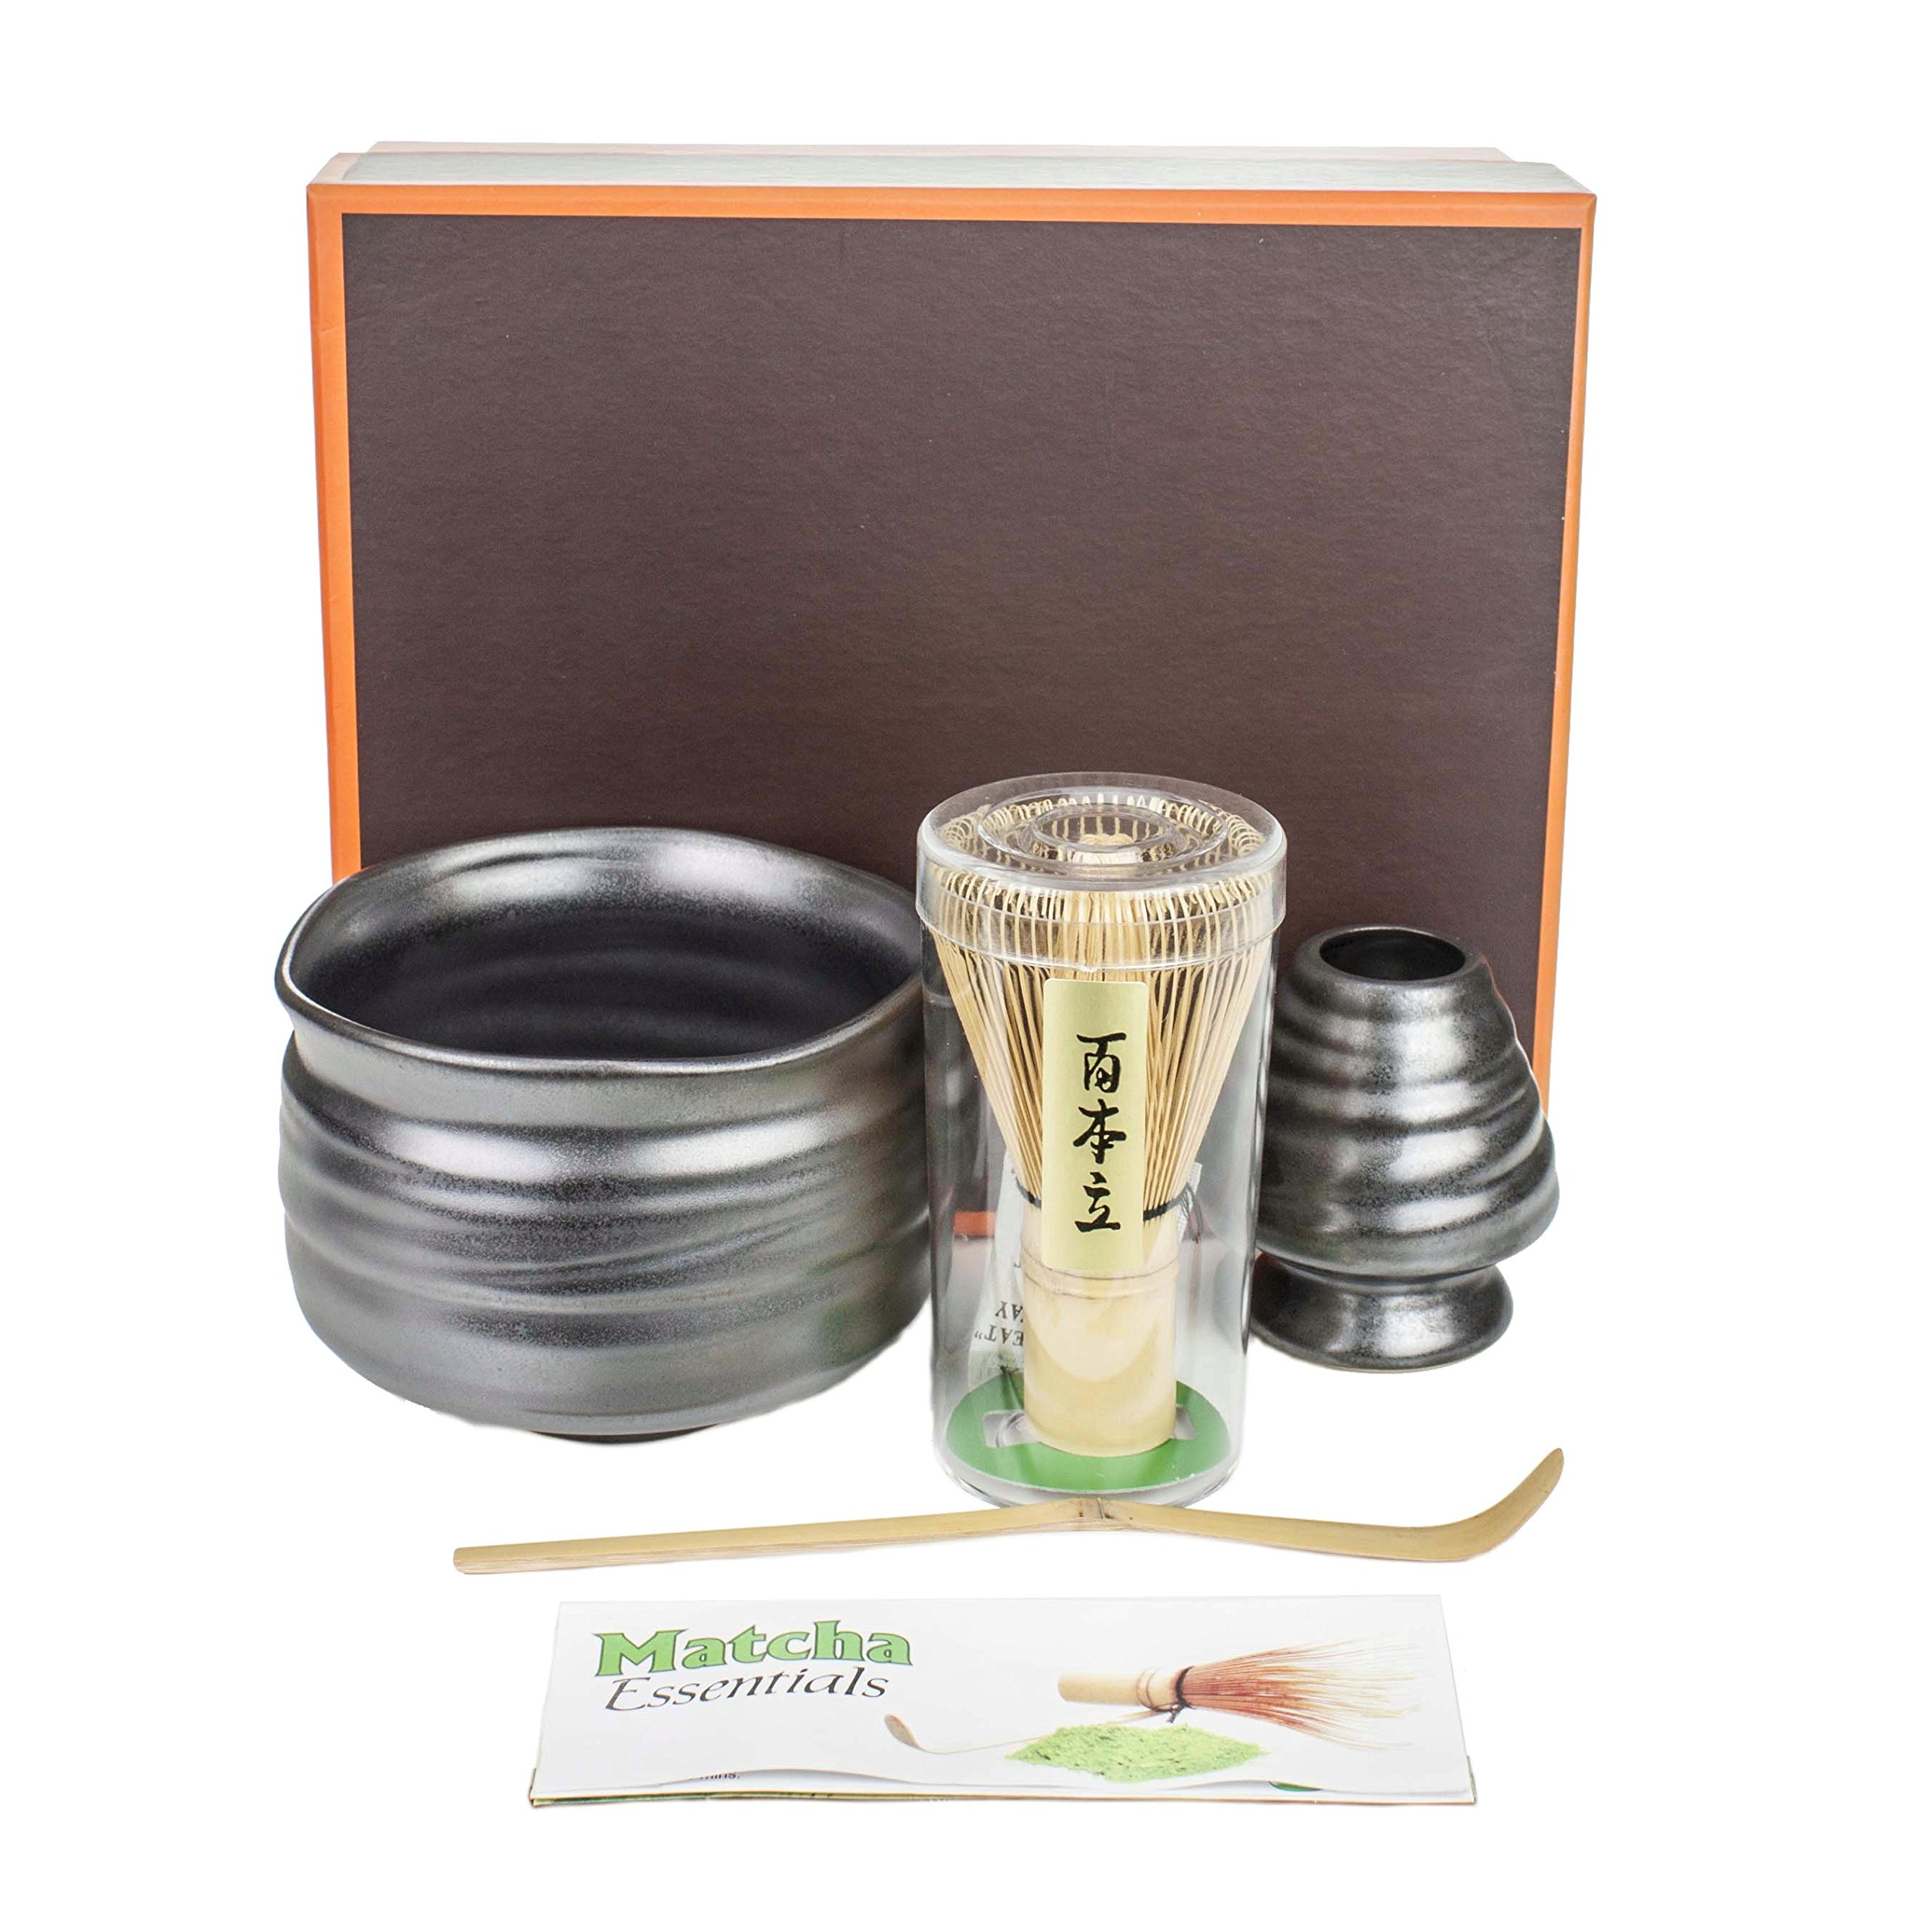 Tea Master Japanese Ceremonial Matcha Green Tea Starter Kit, Modern Gift Set (Black Metallic)